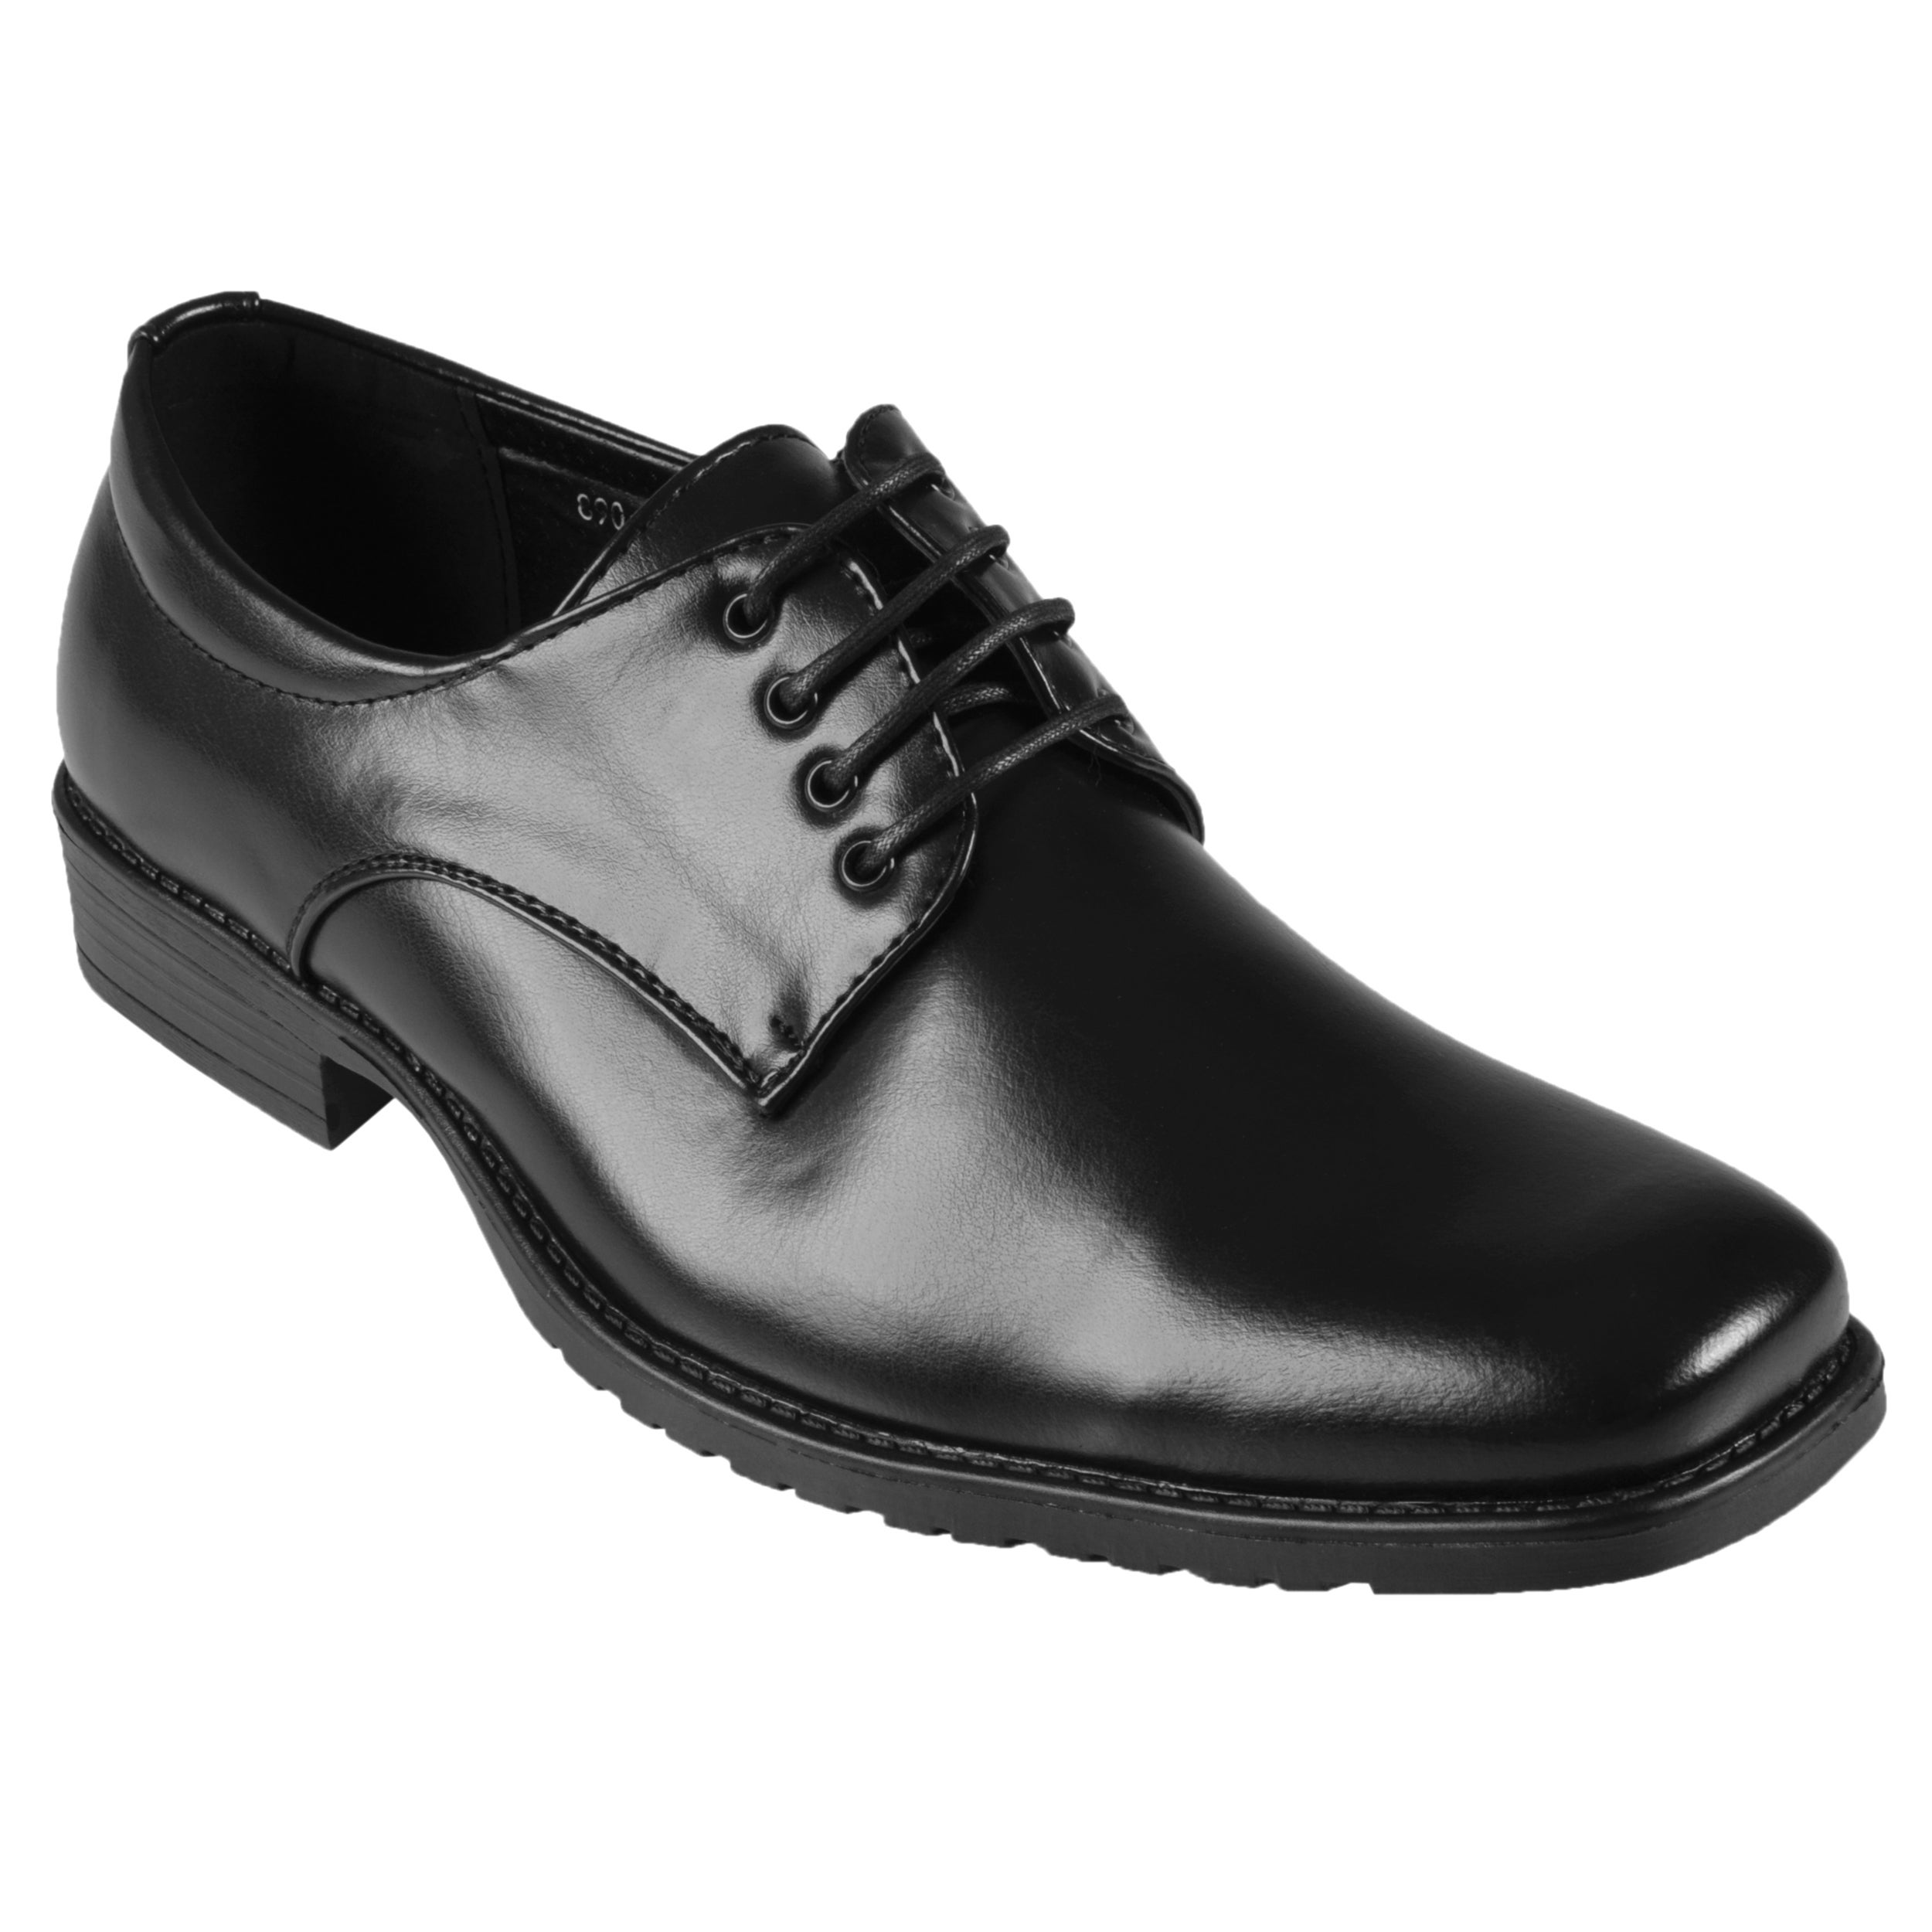 Oxford & Finch Men's Topstitched Square Toe Leather Lace-up Oxfords